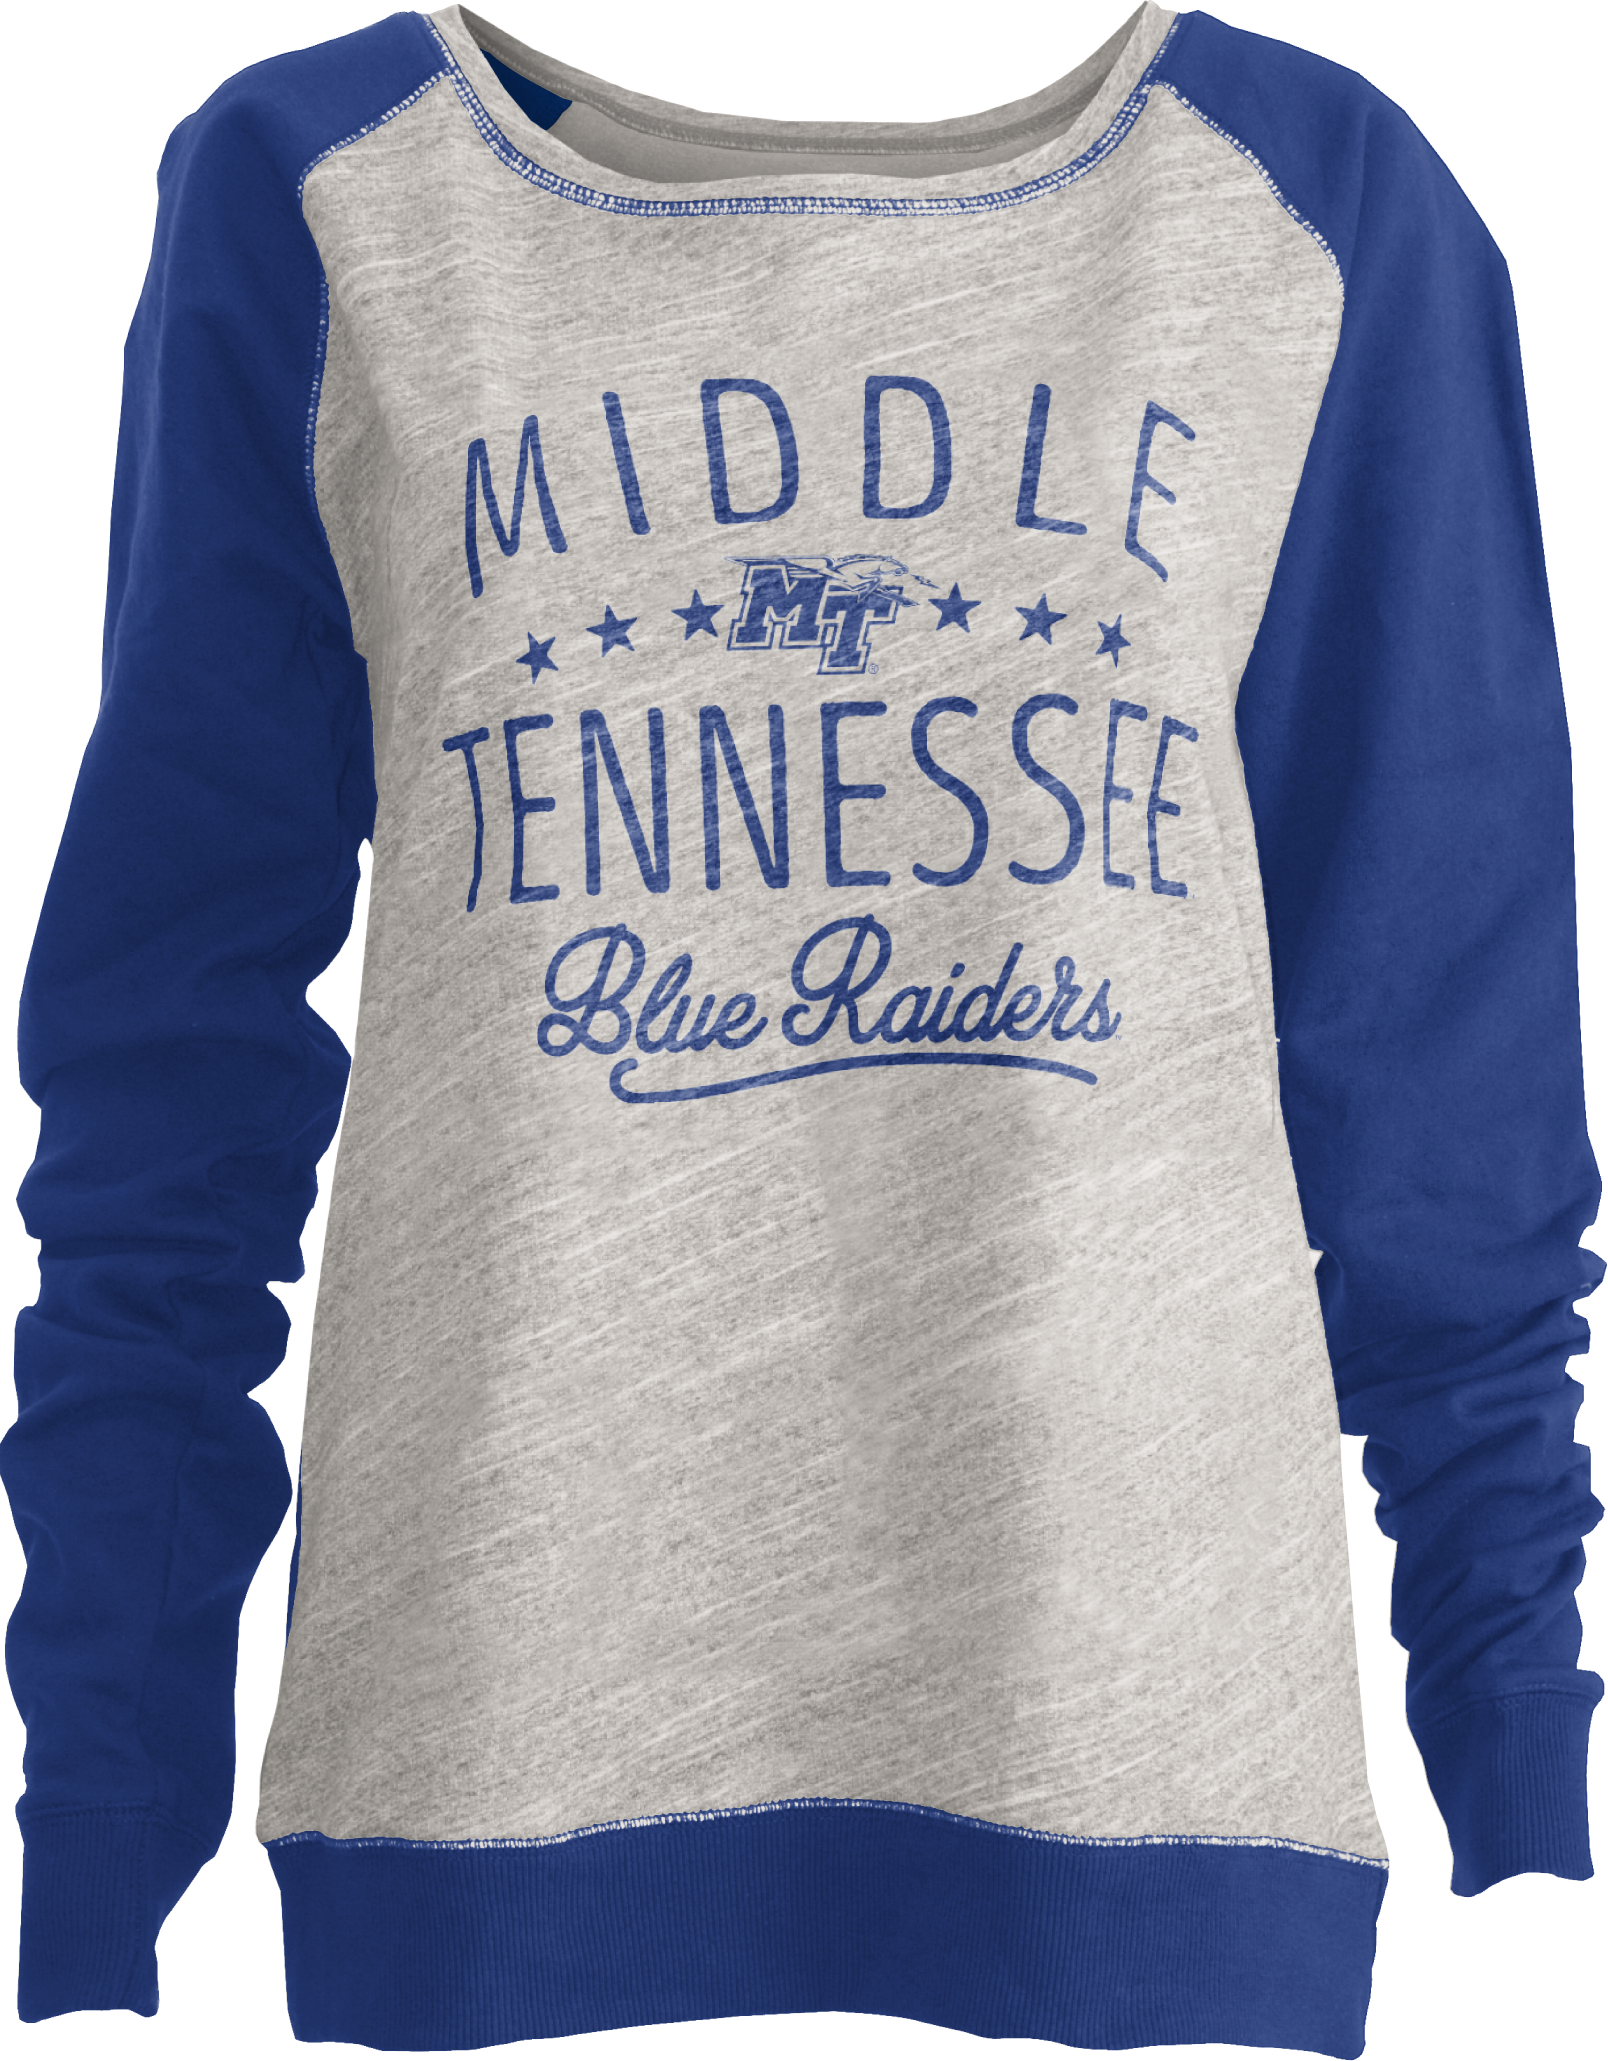 Middle Tennessee Blue Raiders Ives Women's Sweatshirt